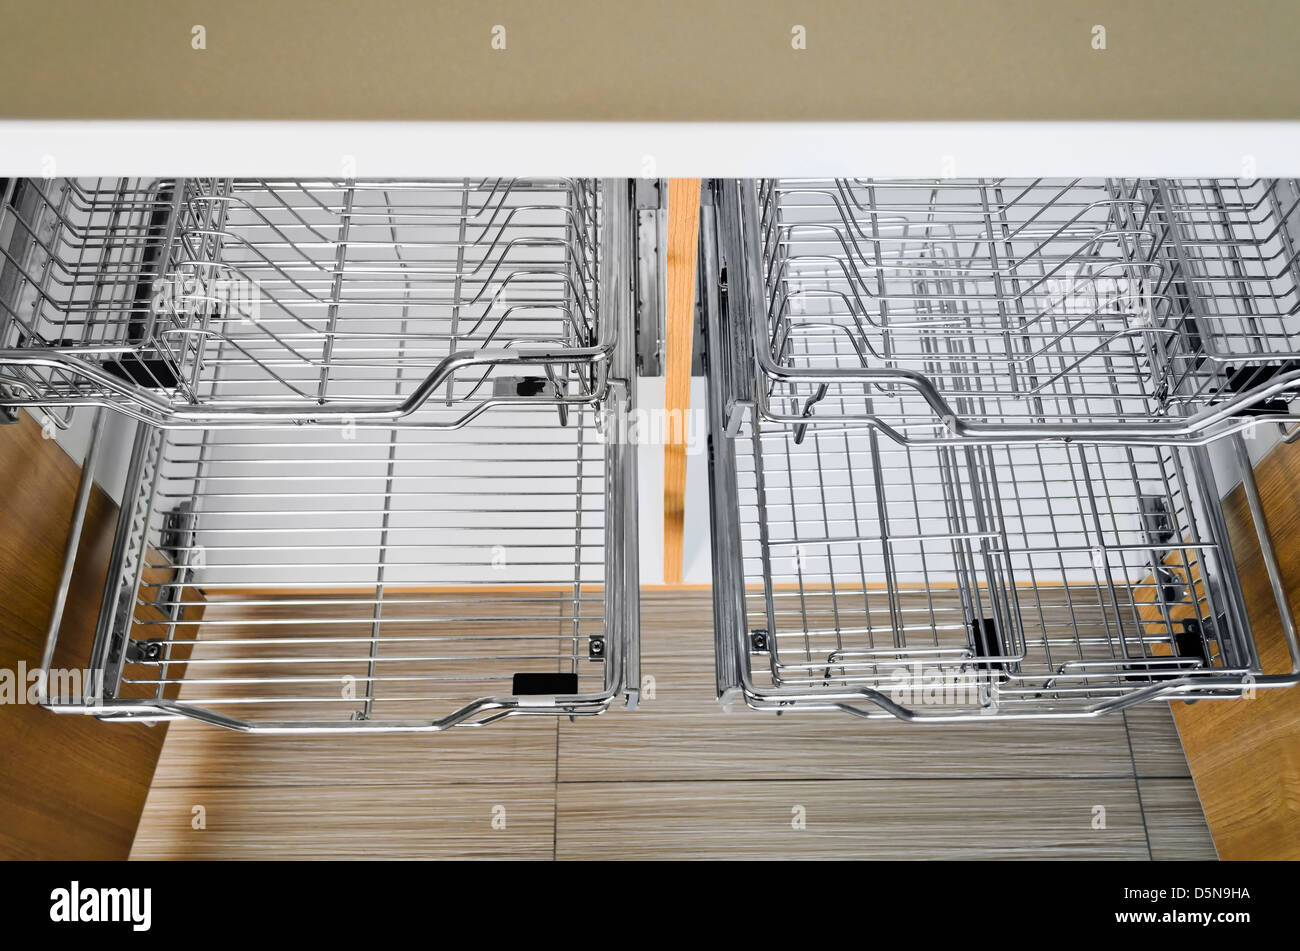 Open Kitchen Cabinet With Two Layers Of Stainless Dish Rack Stock Photo: 55172918